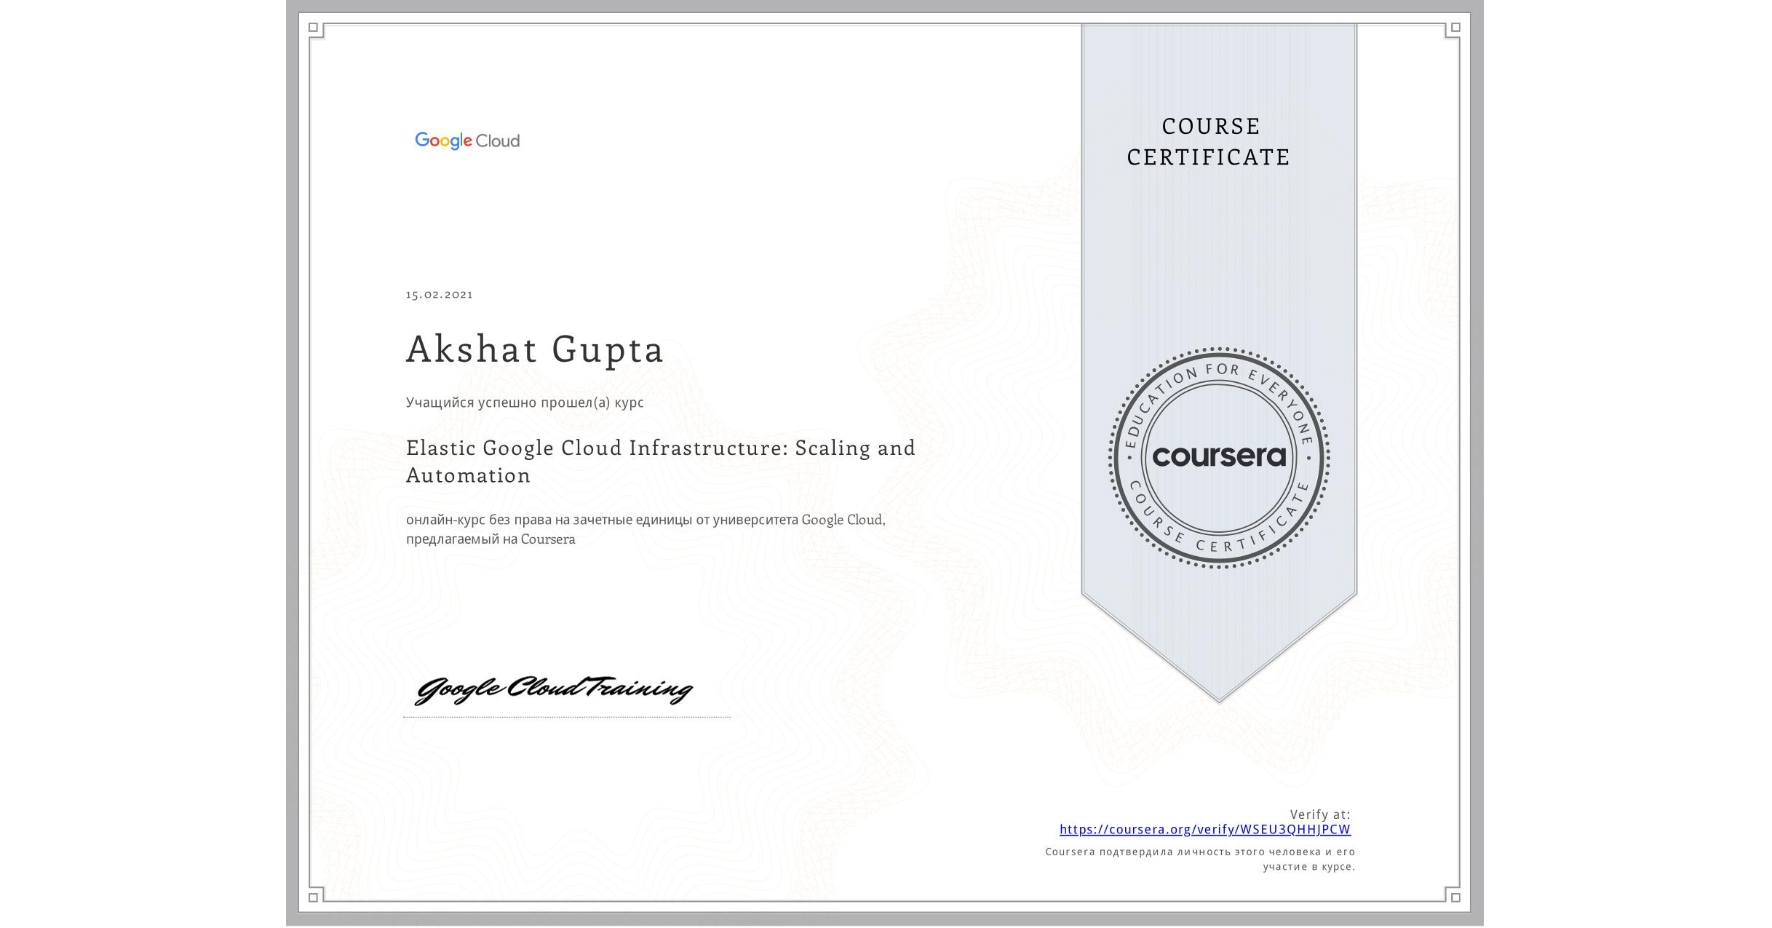 View certificate for Akshat Gupta, Elastic Google Cloud Infrastructure: Scaling and Automation, an online non-credit course authorized by Google Cloud and offered through Coursera